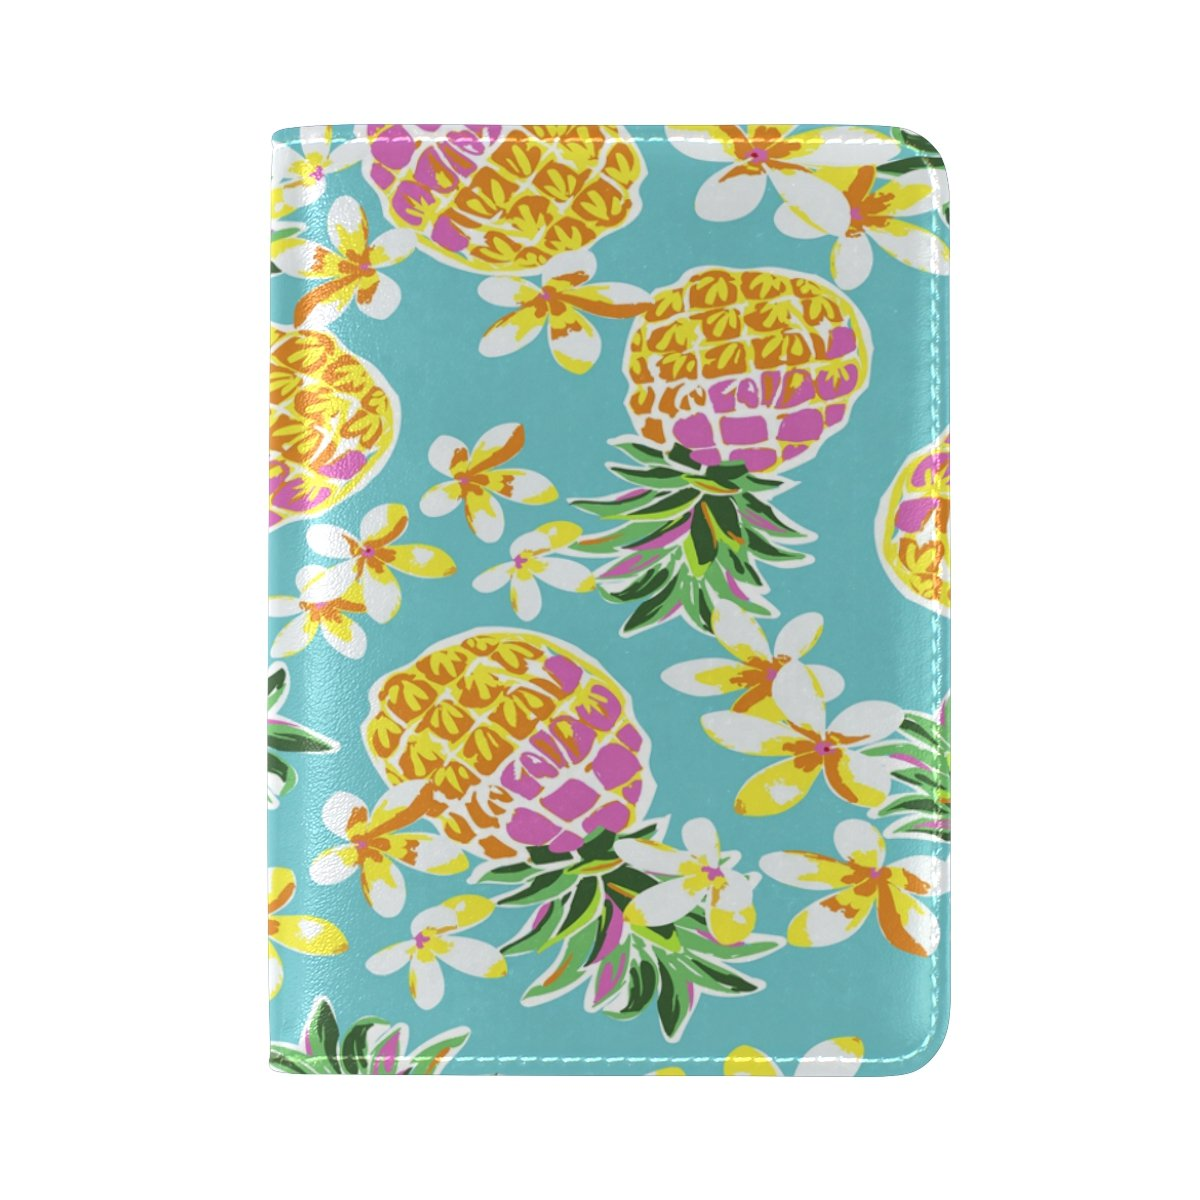 ALAZA Tropical Flower Pineapple Fruit Leather Passport Holder Cover Case Travel One Pocket